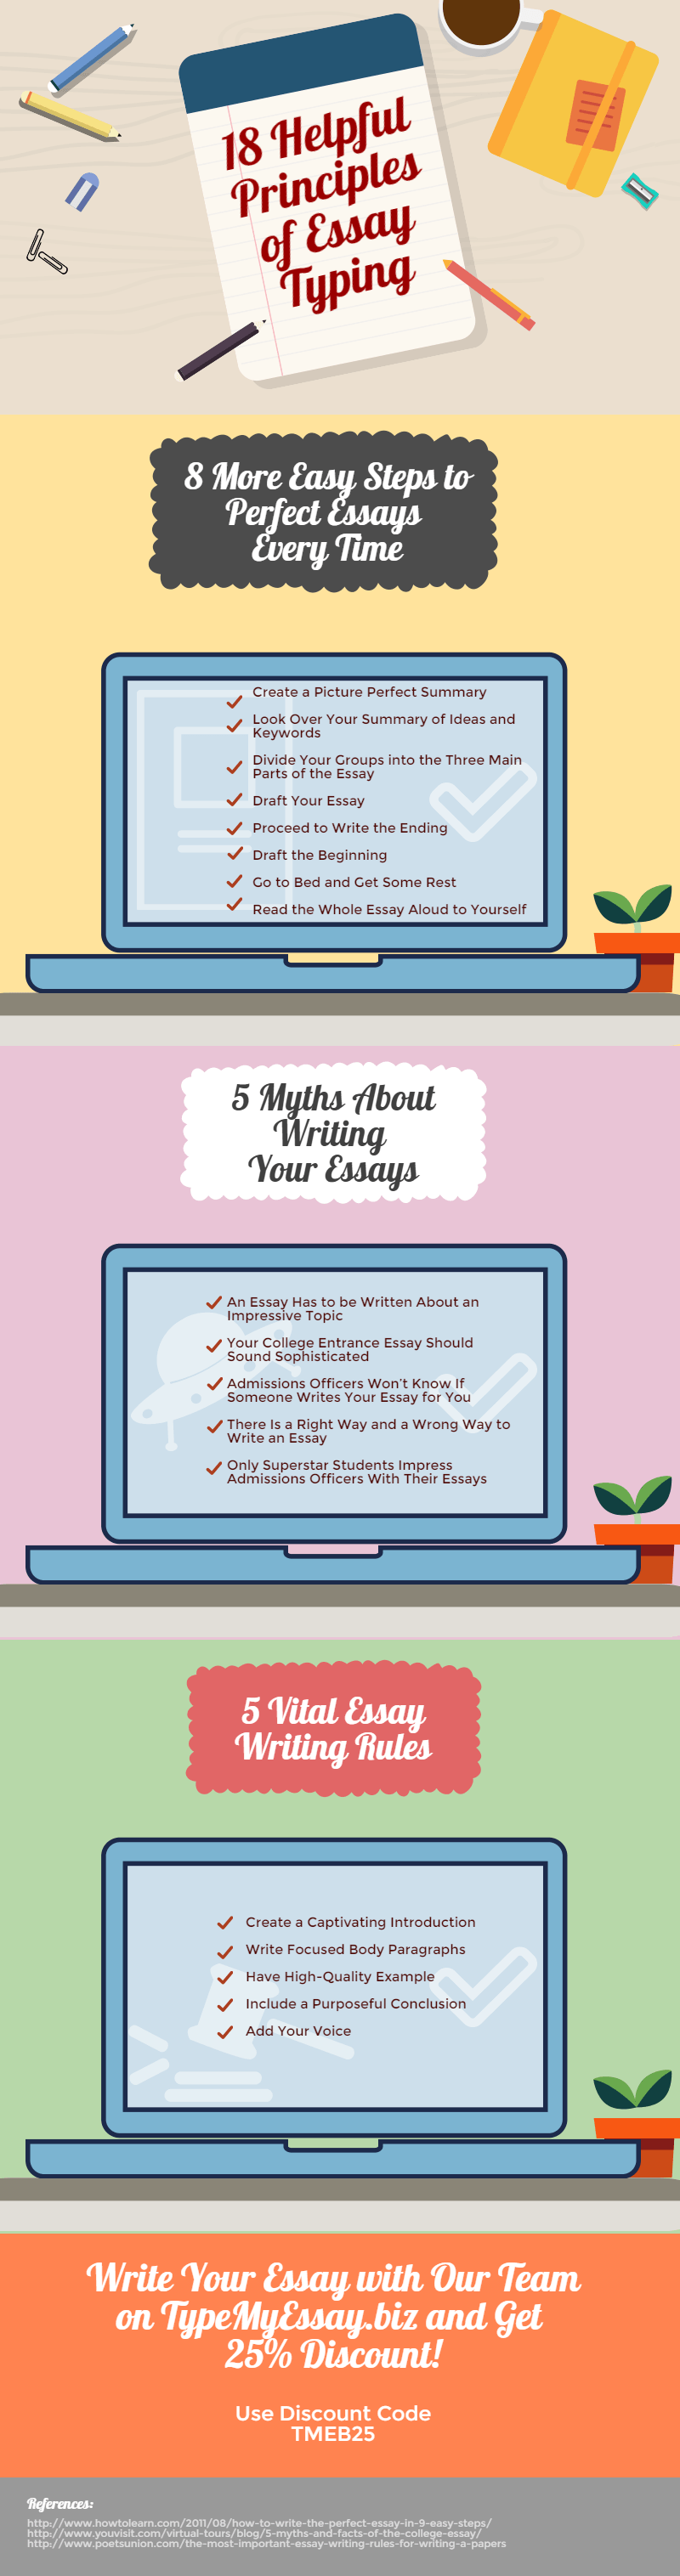 essay it traffic accident essay traffic accident essay gxart road  helpful principles of essay writing infographic e learning 18 helpful principles of essay writing infographic